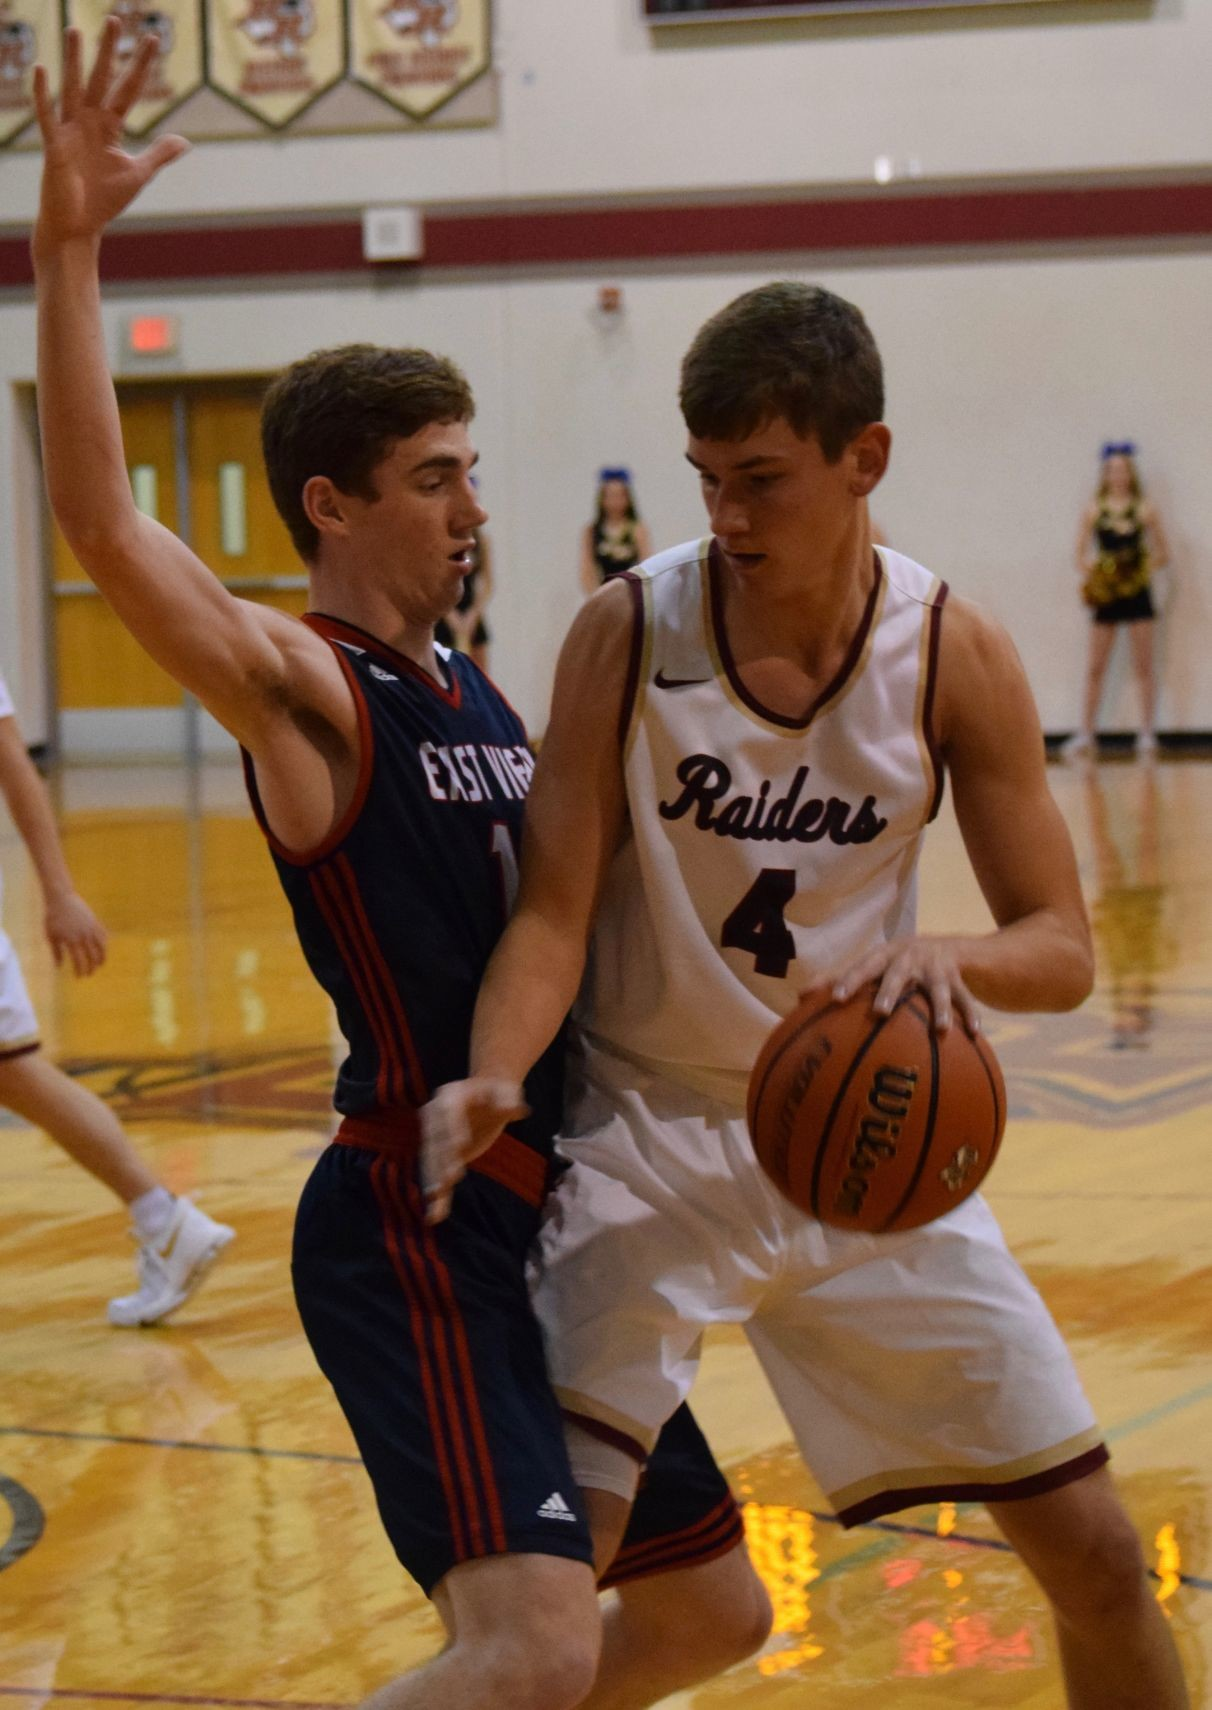 Michael Forster led the Raiders with 20 points and nine rebounds and Rouse beat East View 74-60 at home Tuesday night.